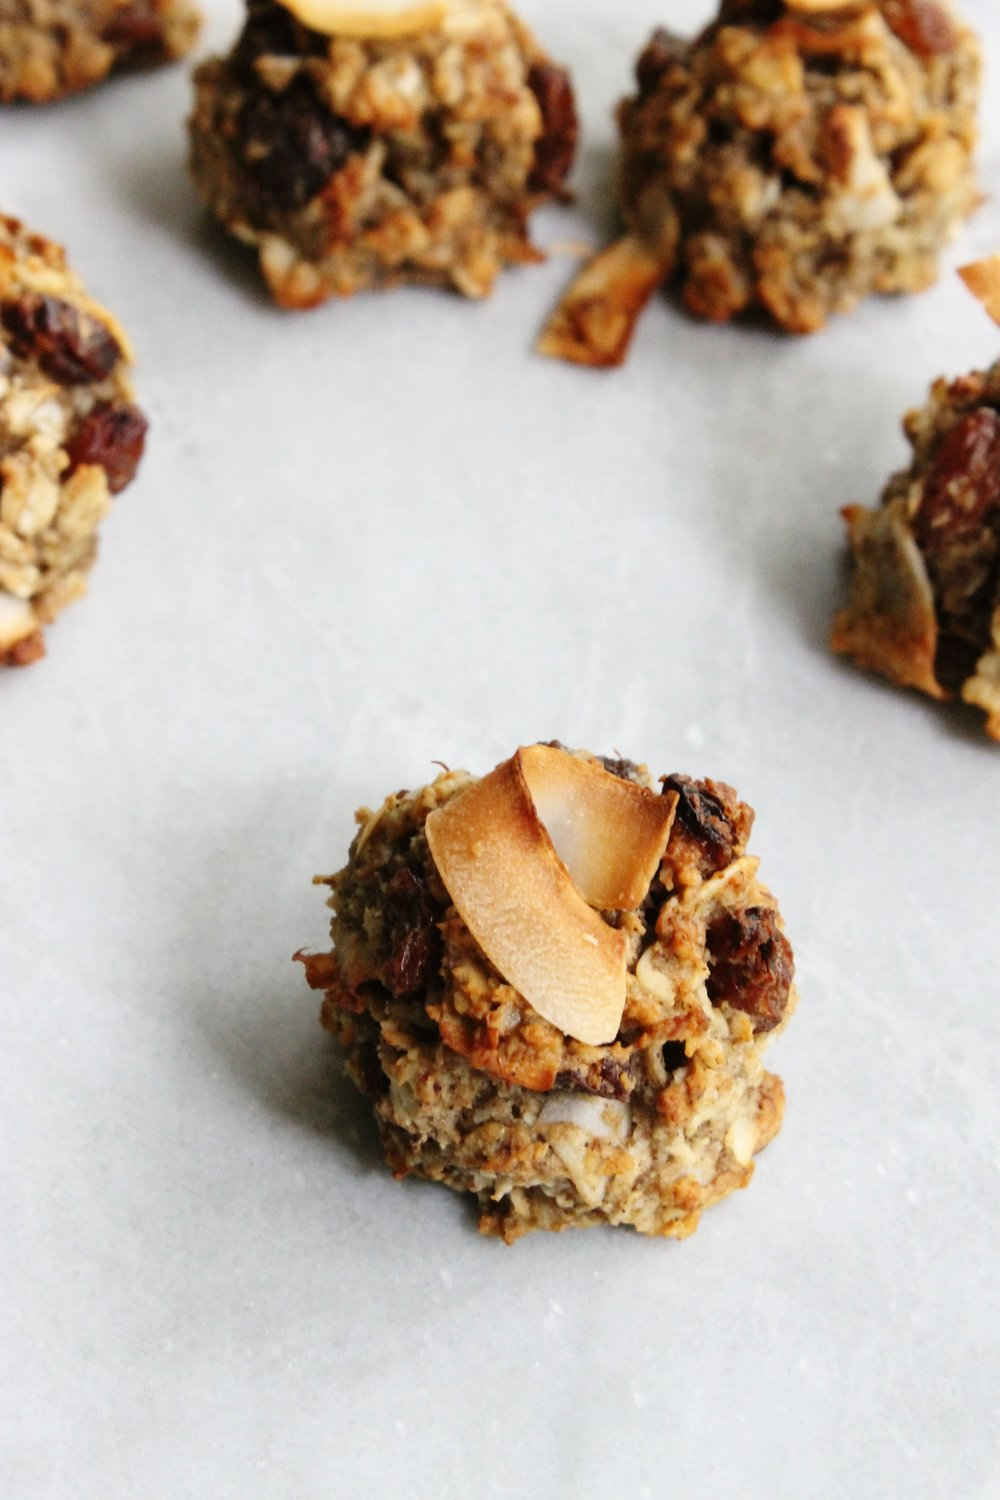 Healthy coconut-raisin cookies | Beloved Kitchen